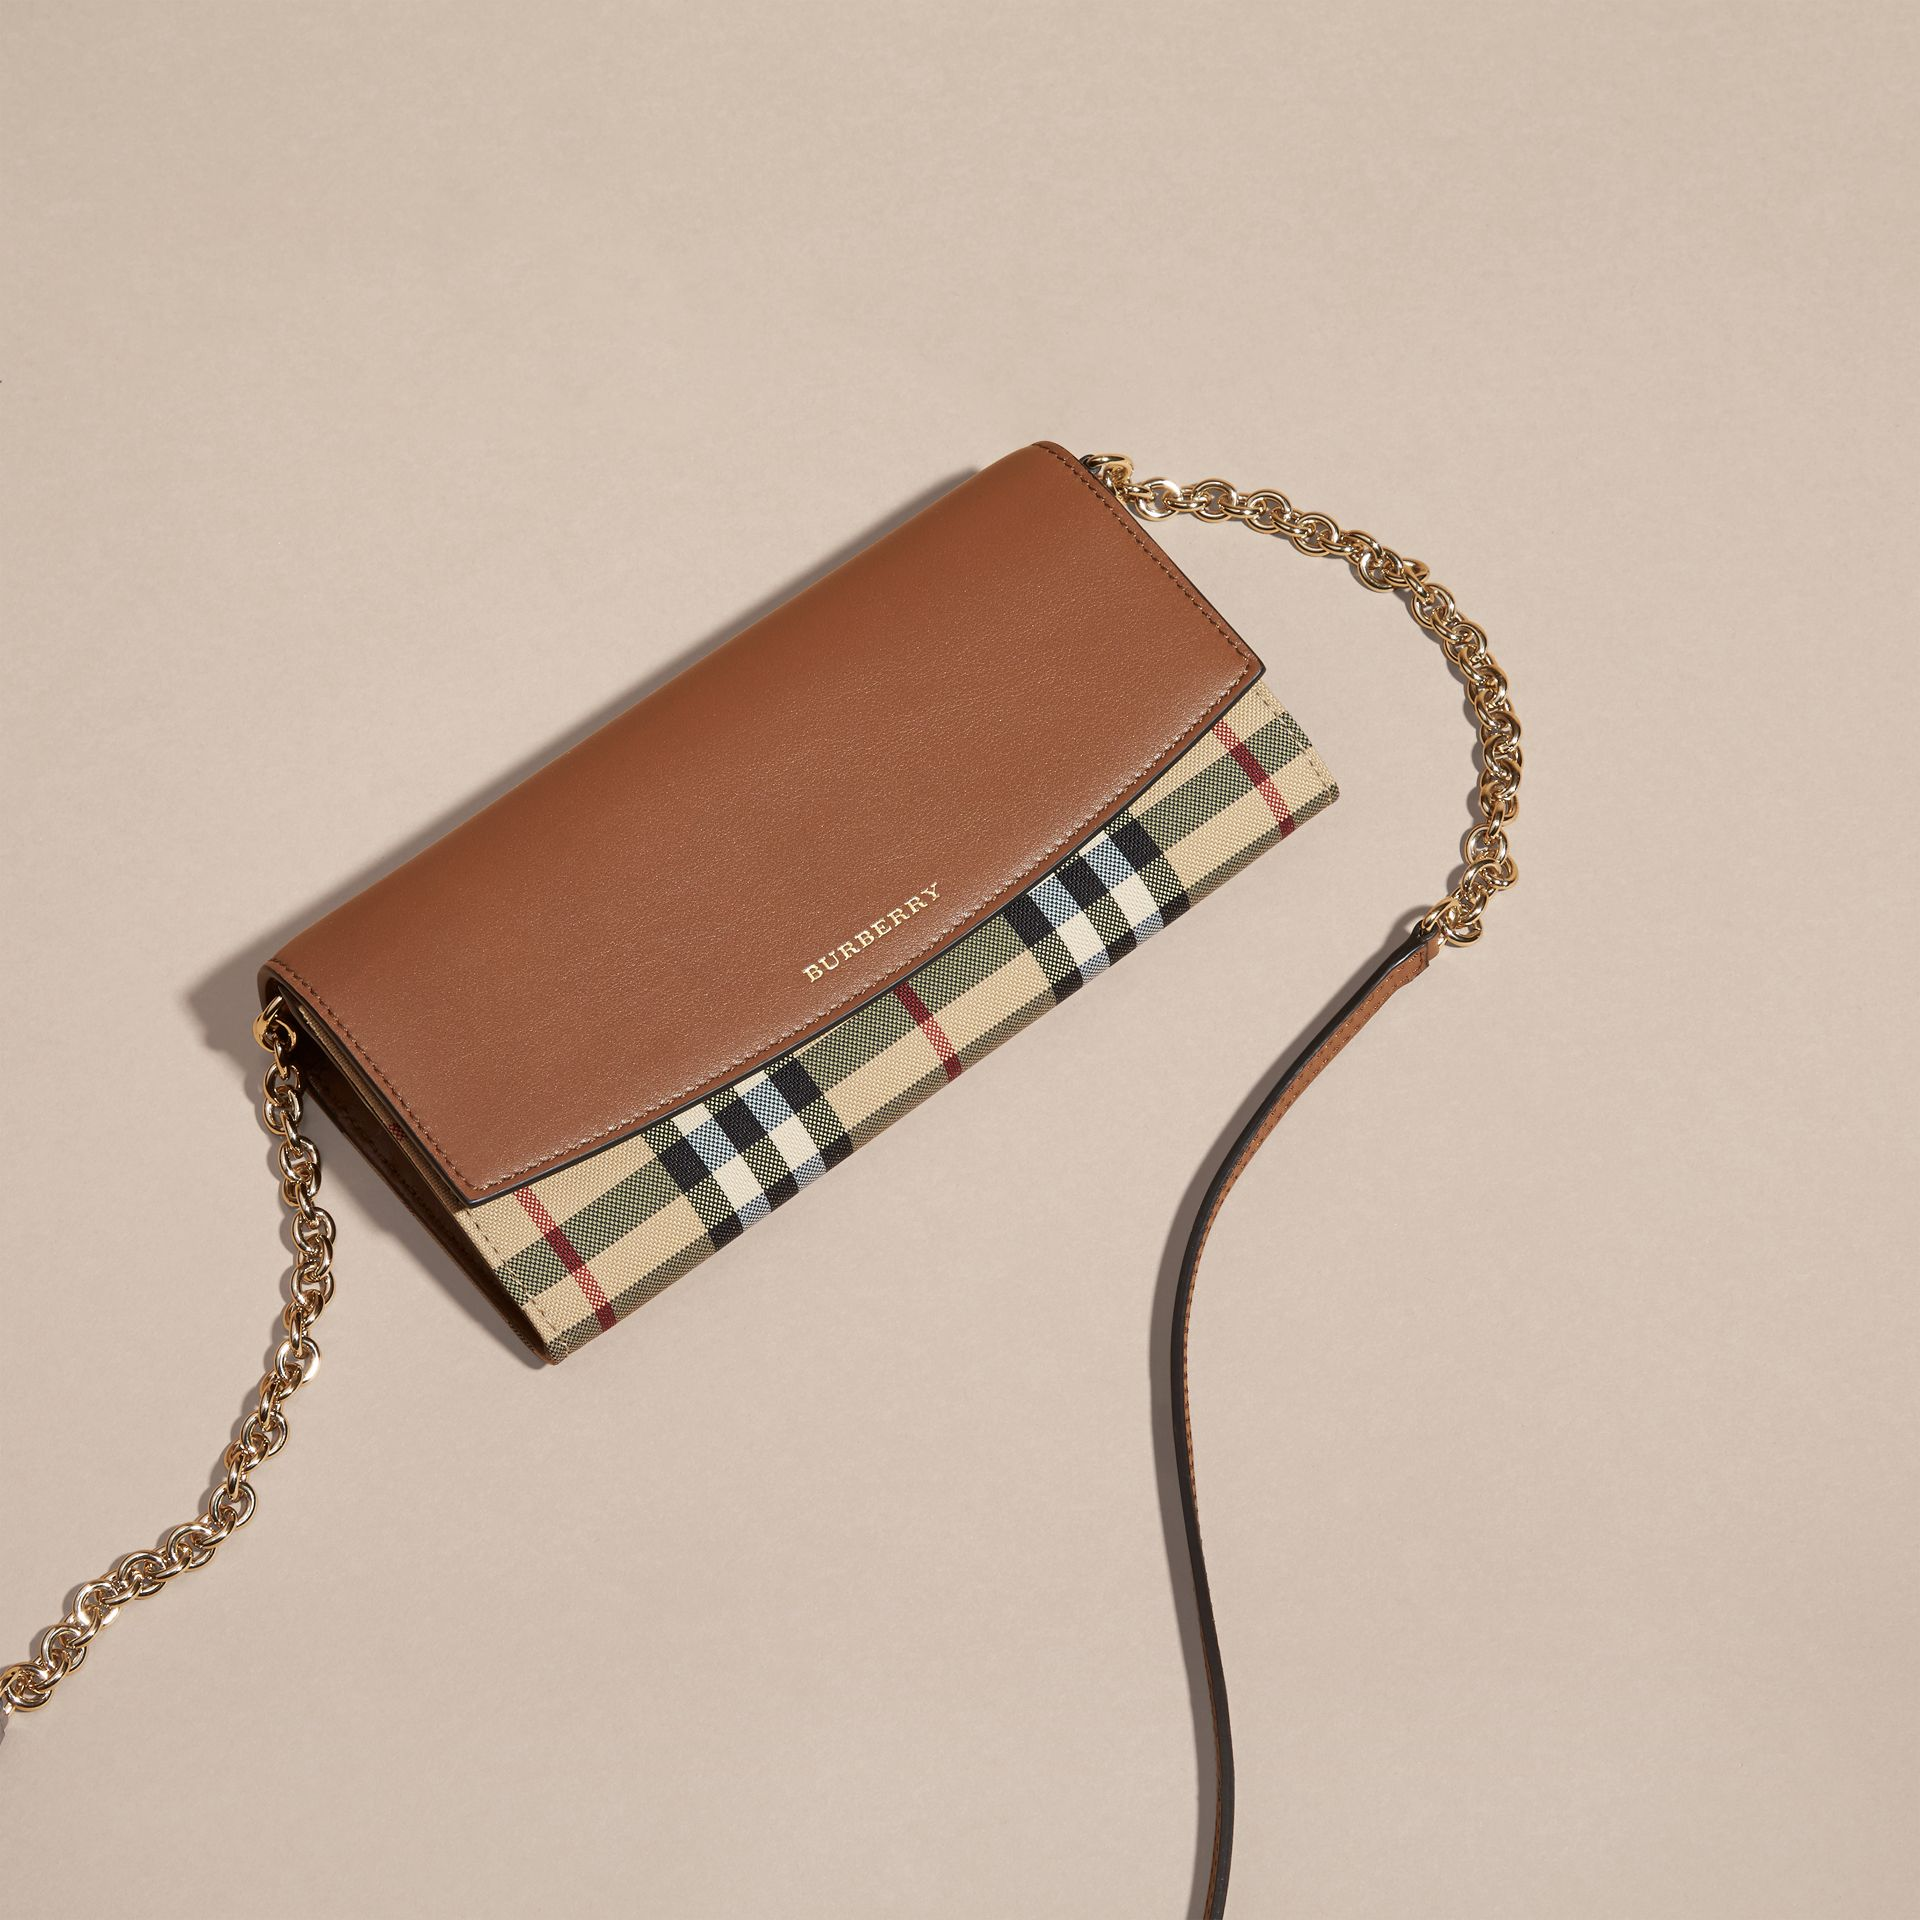 Horseferry Check and Leather Wallet with Chain in Tan - Women | Burberry - gallery image 7